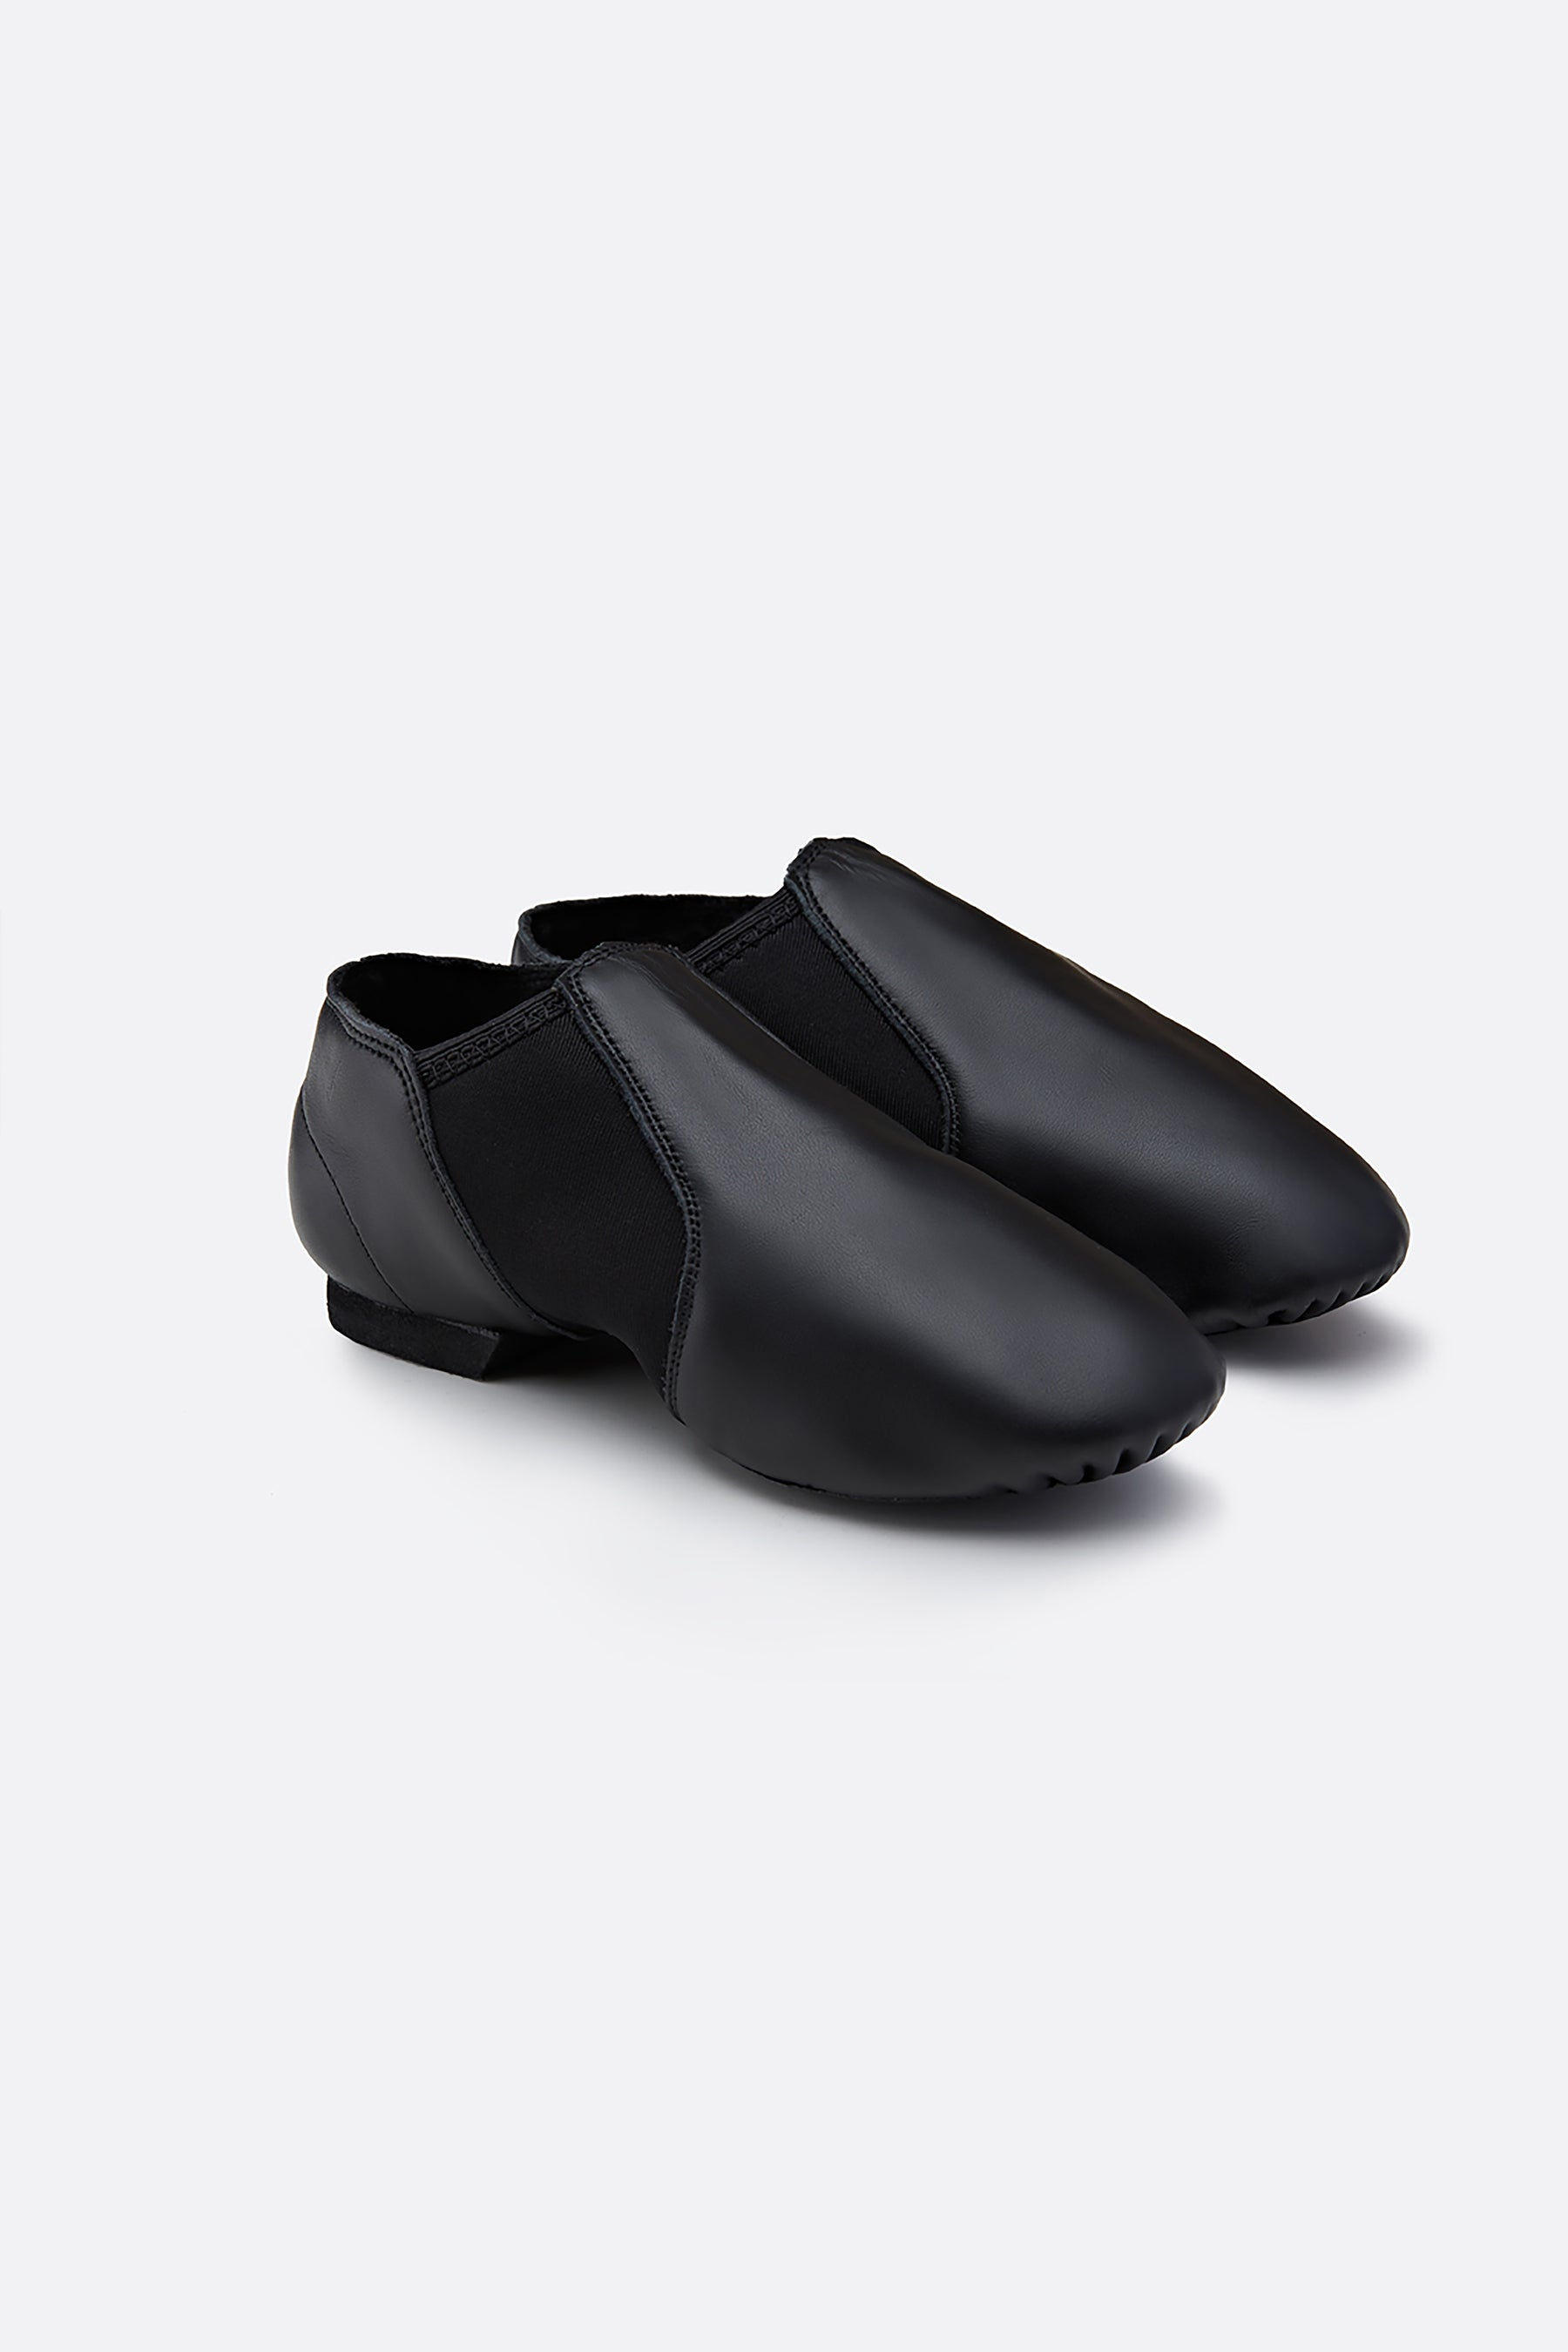 Adult's Leather Jazz Shoes